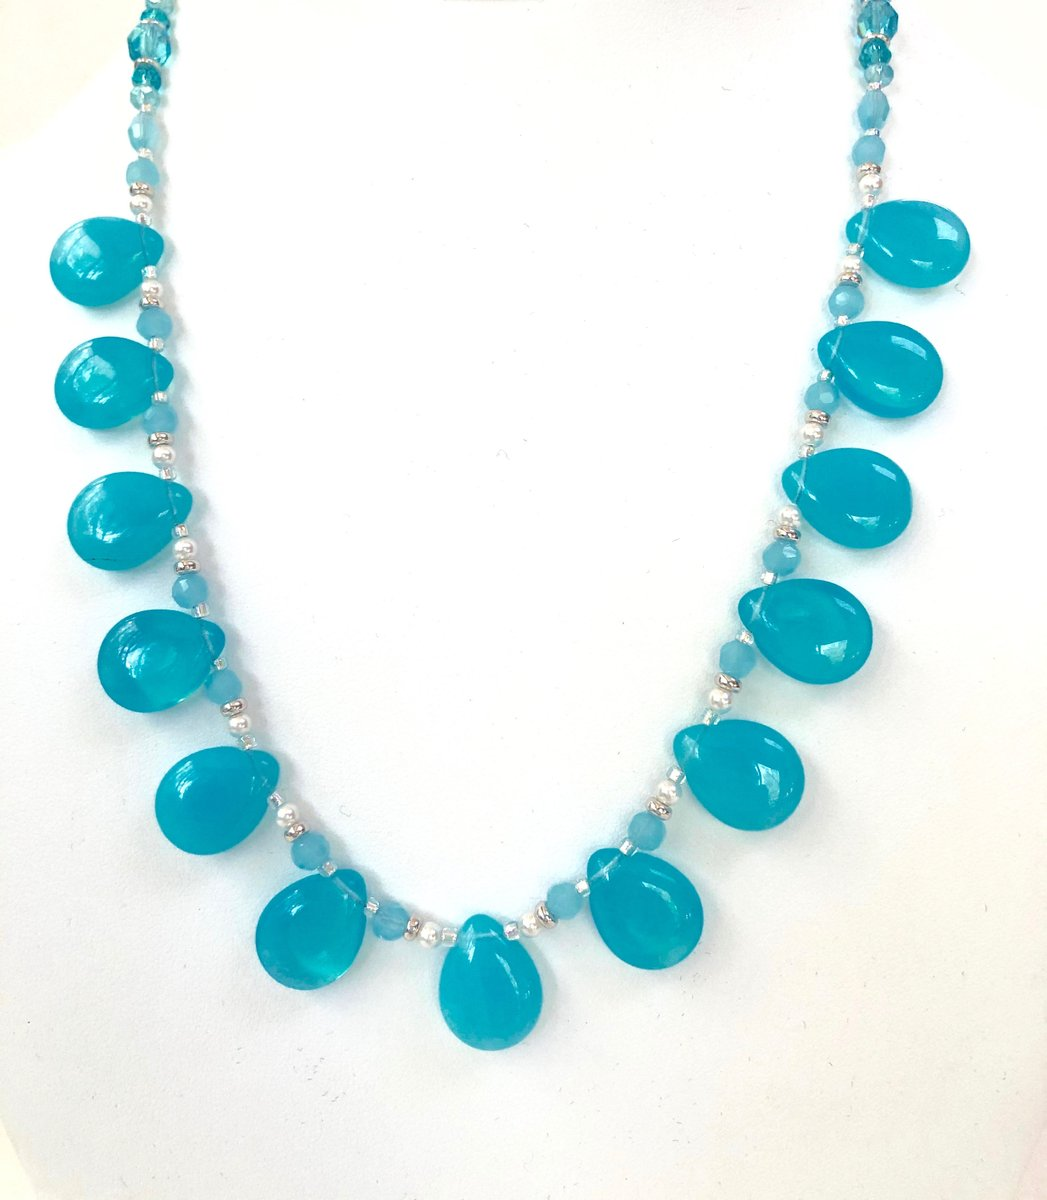 Sharing for Susan Ryan on Etsy  Really love this, from the Etsy shop SRyanJewelryDesigns. https://t.co/xK6m0bOu6E #etsy #statementnecklace #handmadejewelry #teardropnecklace #womensjewelry #bluenecklaceset #beadedjewelryset #bluebeadnecklace #necklaceearrings https://t.co/z2JYoSemiS